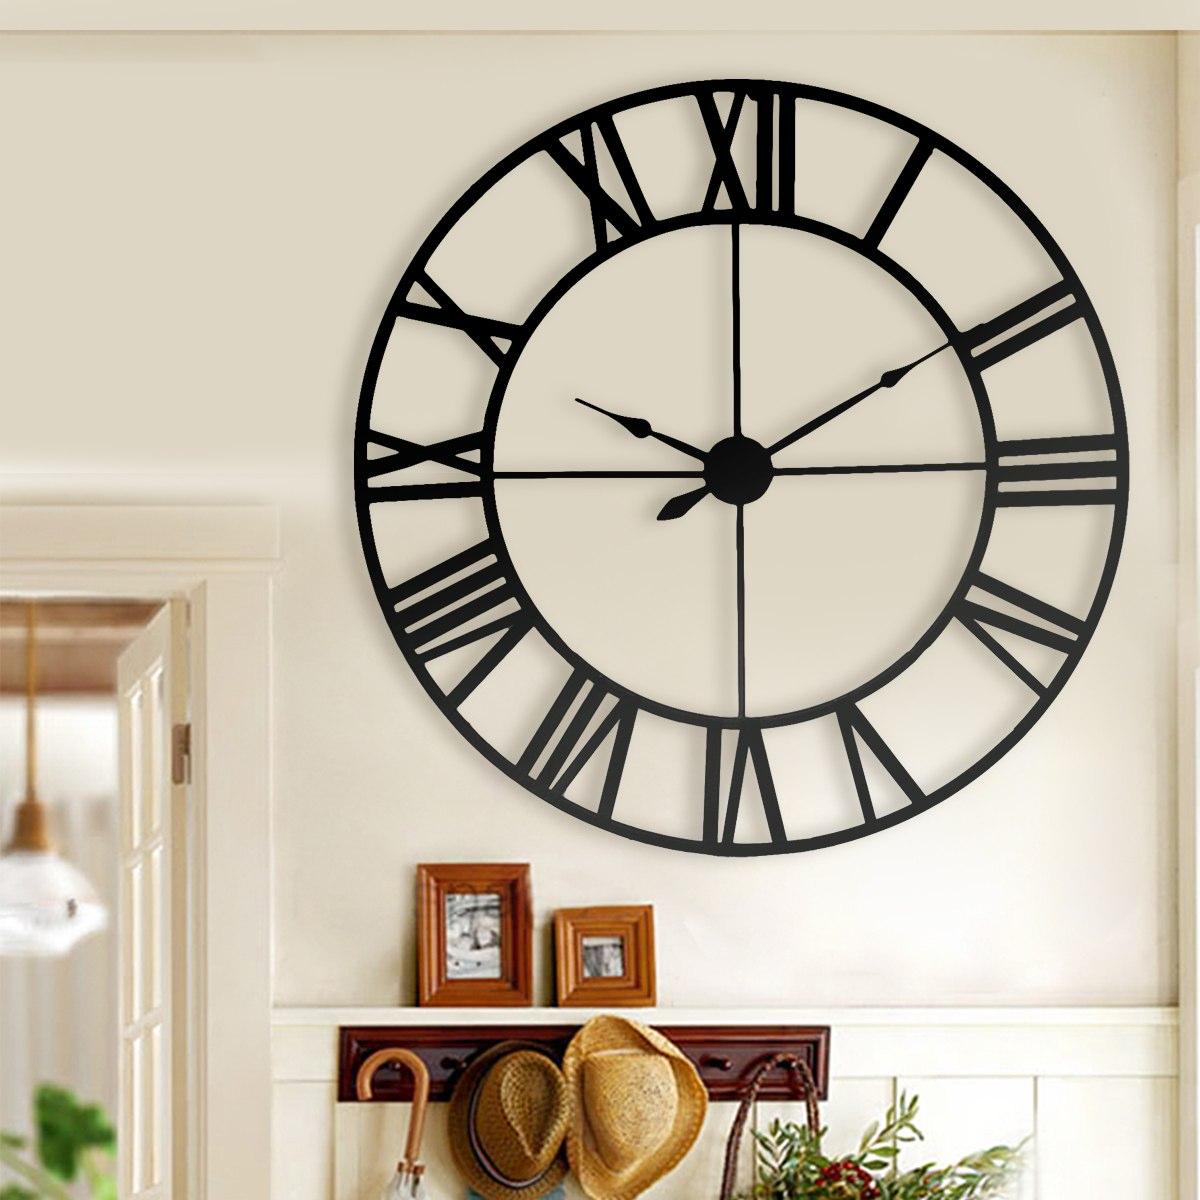 Wall-Clock Iron Home-Decor 80cm Black Hollow Modern Large New Roman Art Retro 3D Numerals